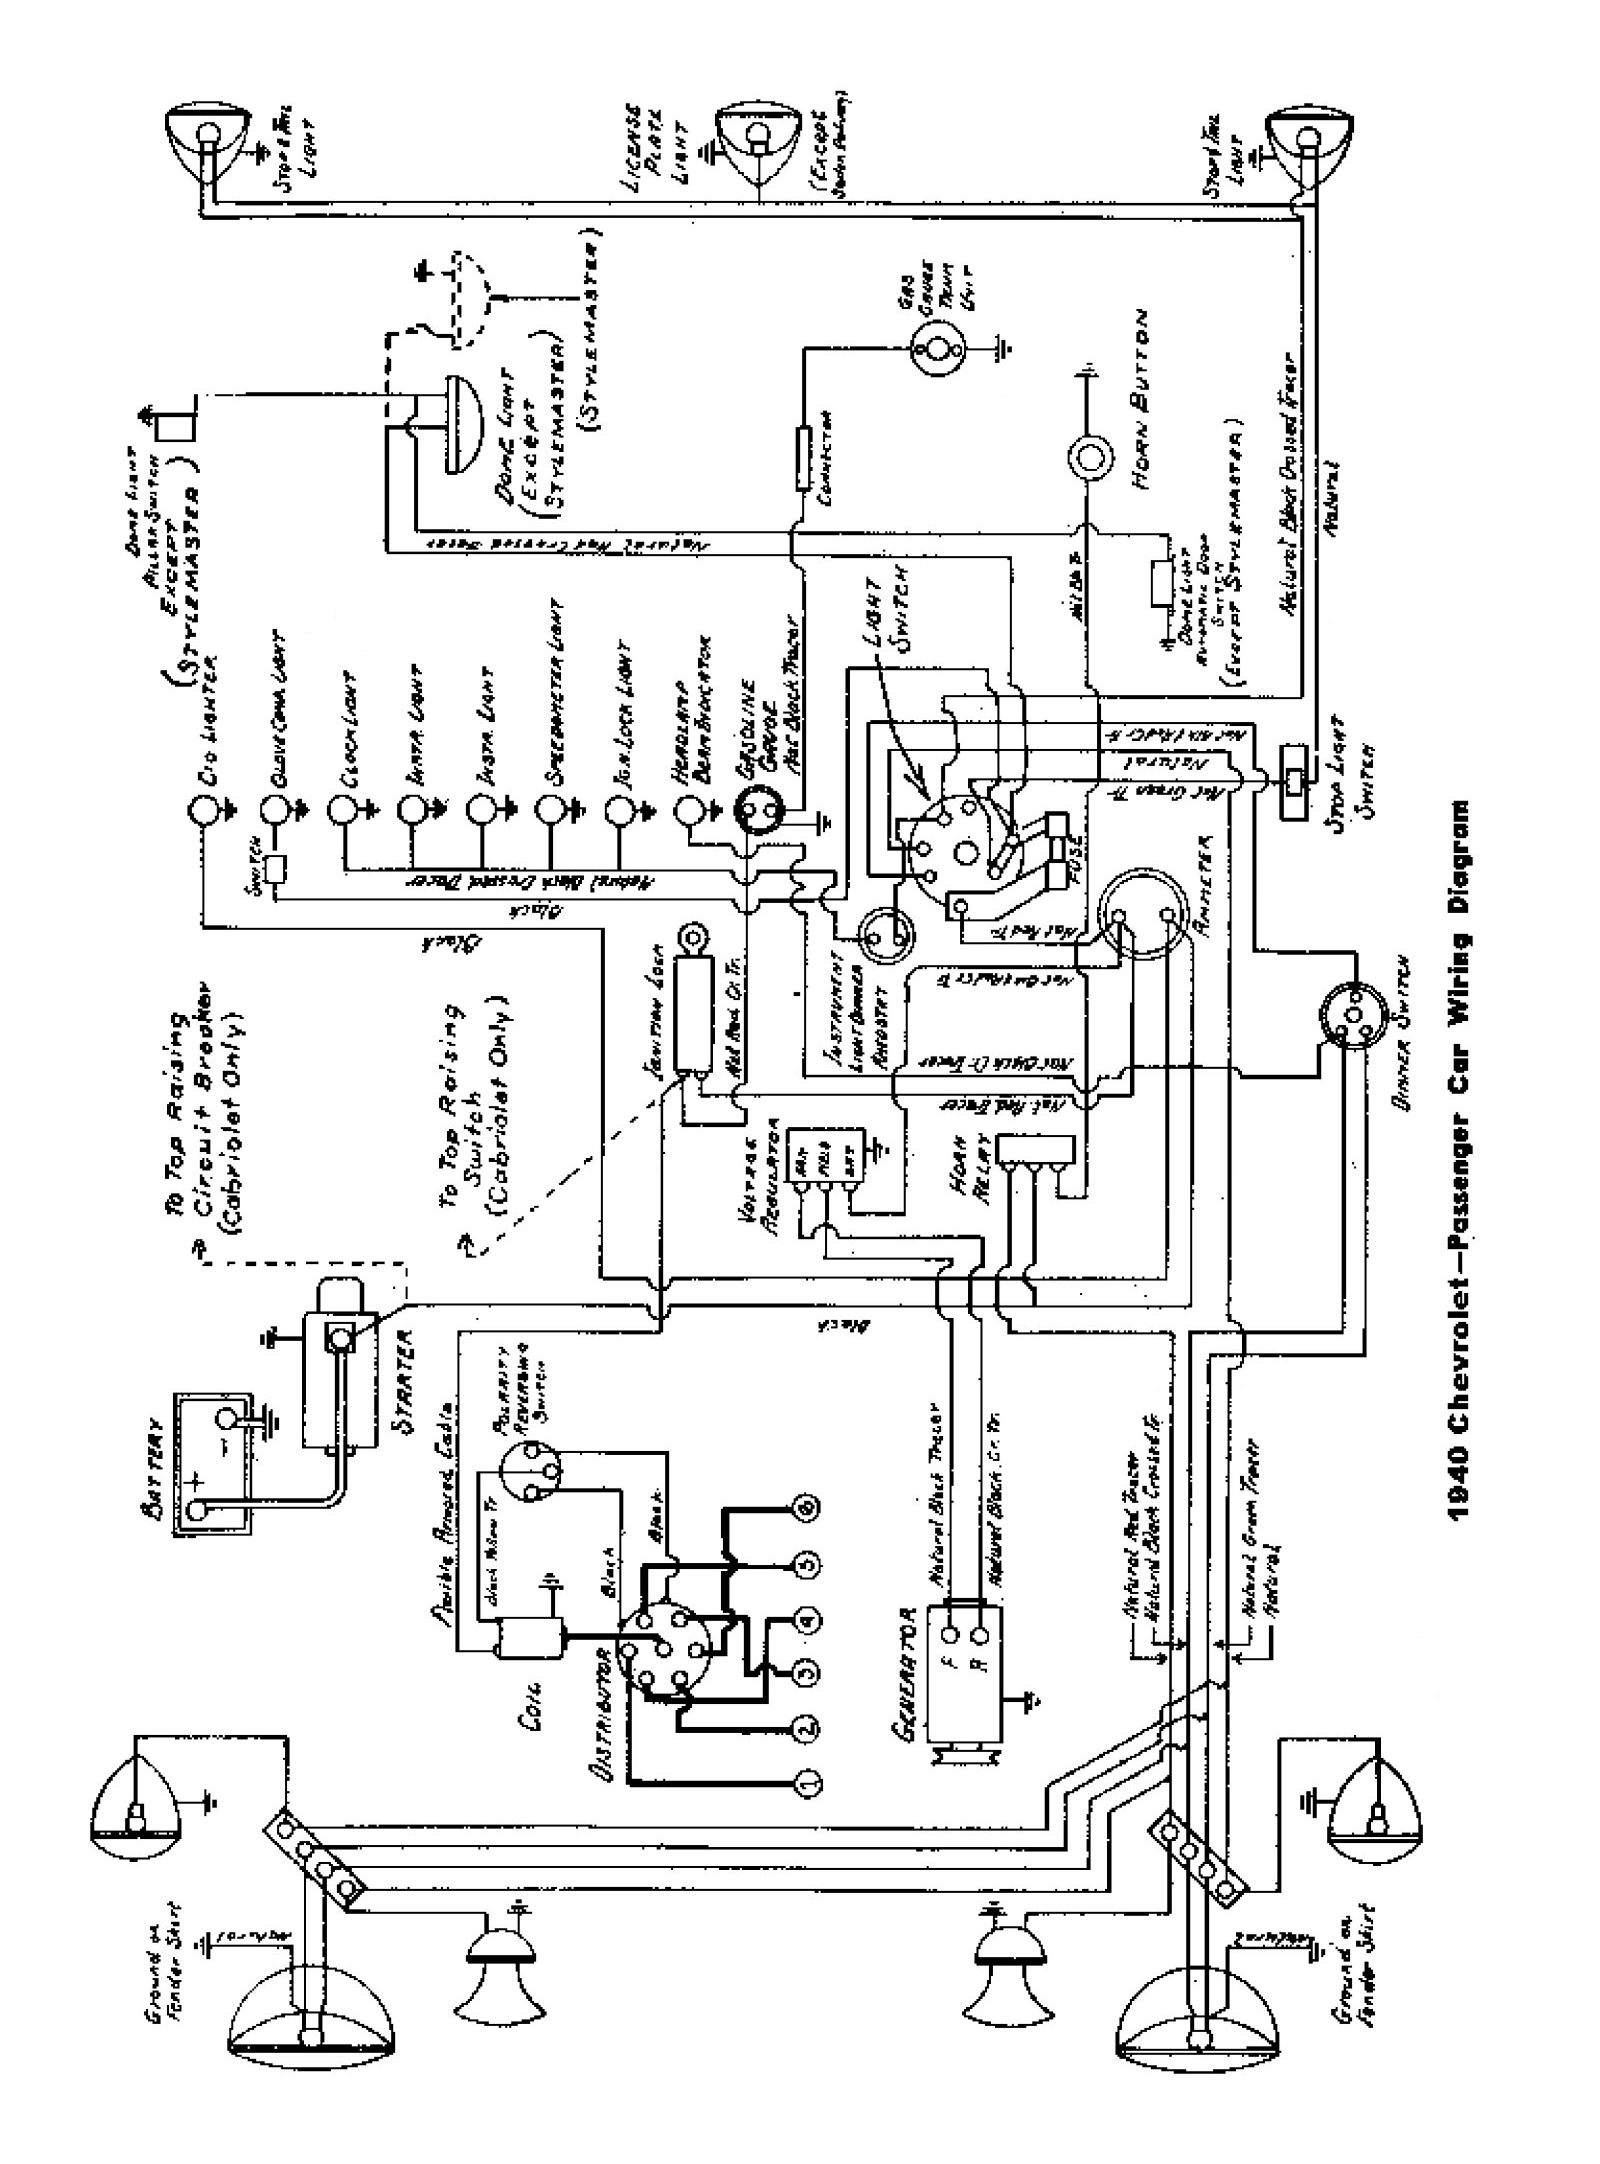 Electrical Wiring Diagram For 1939 Chevrolet Truck Circuit Wiring 1999  Chevy Tracker Engine Diagram 1939 Chevy Car Motor Diagram